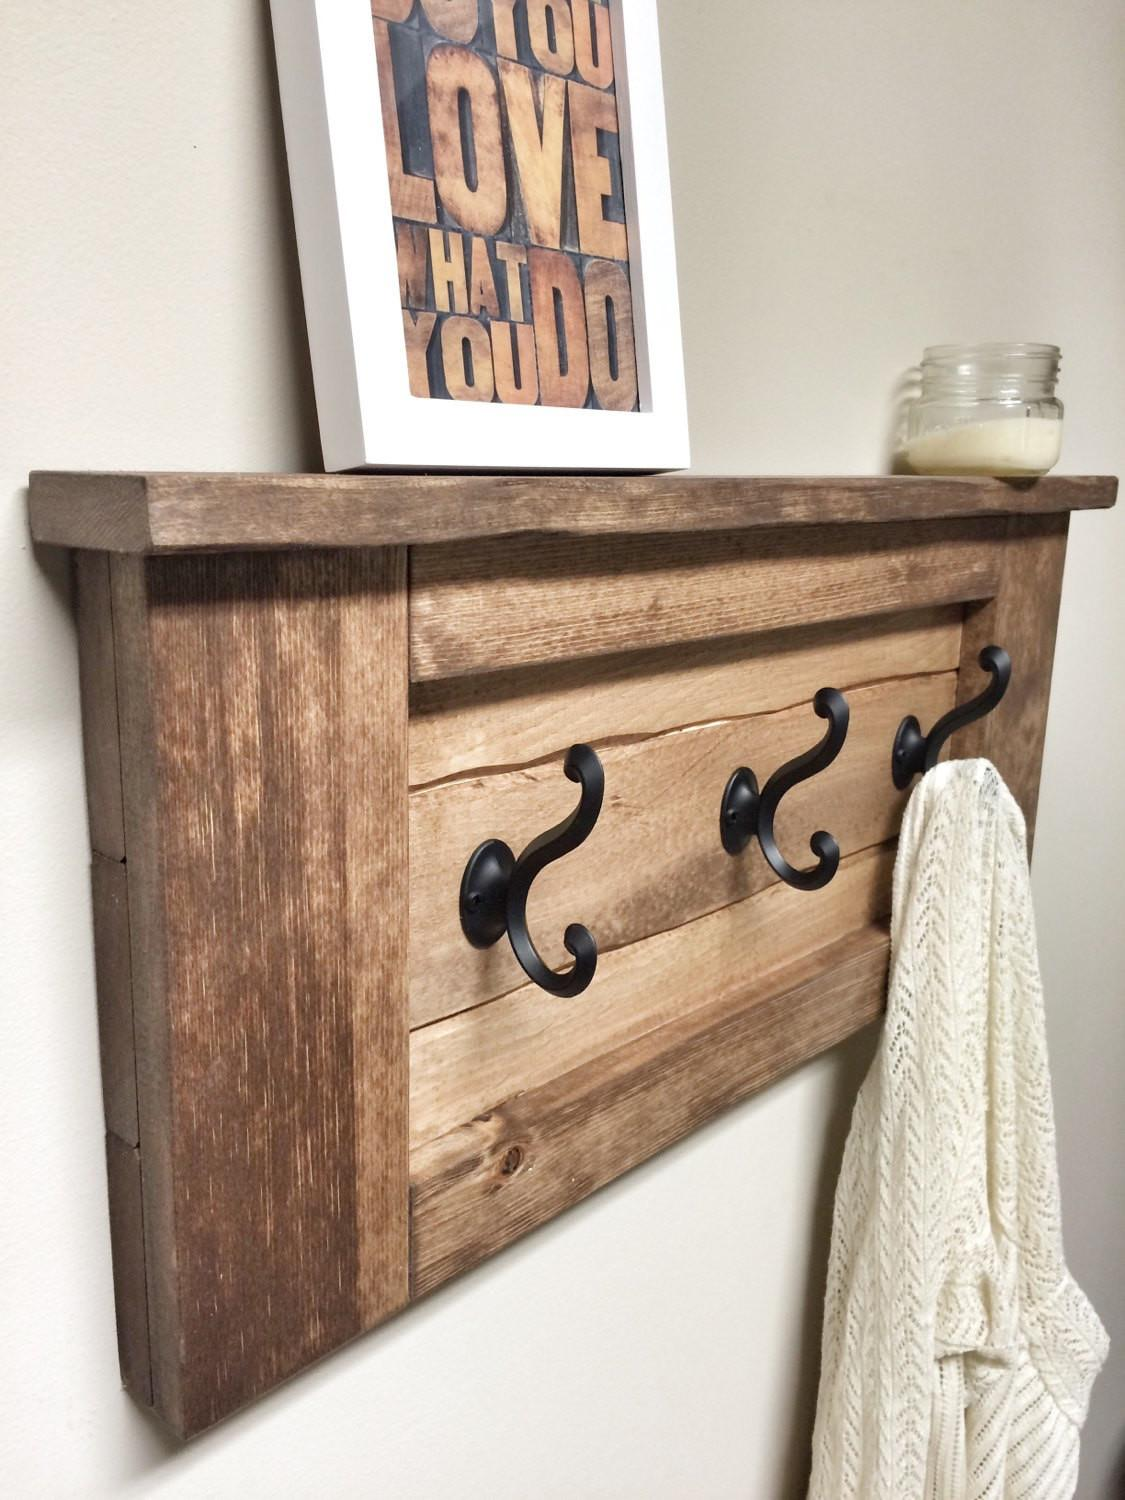 Rustic Wooden Entryway Walnut Coat Rack Shelf